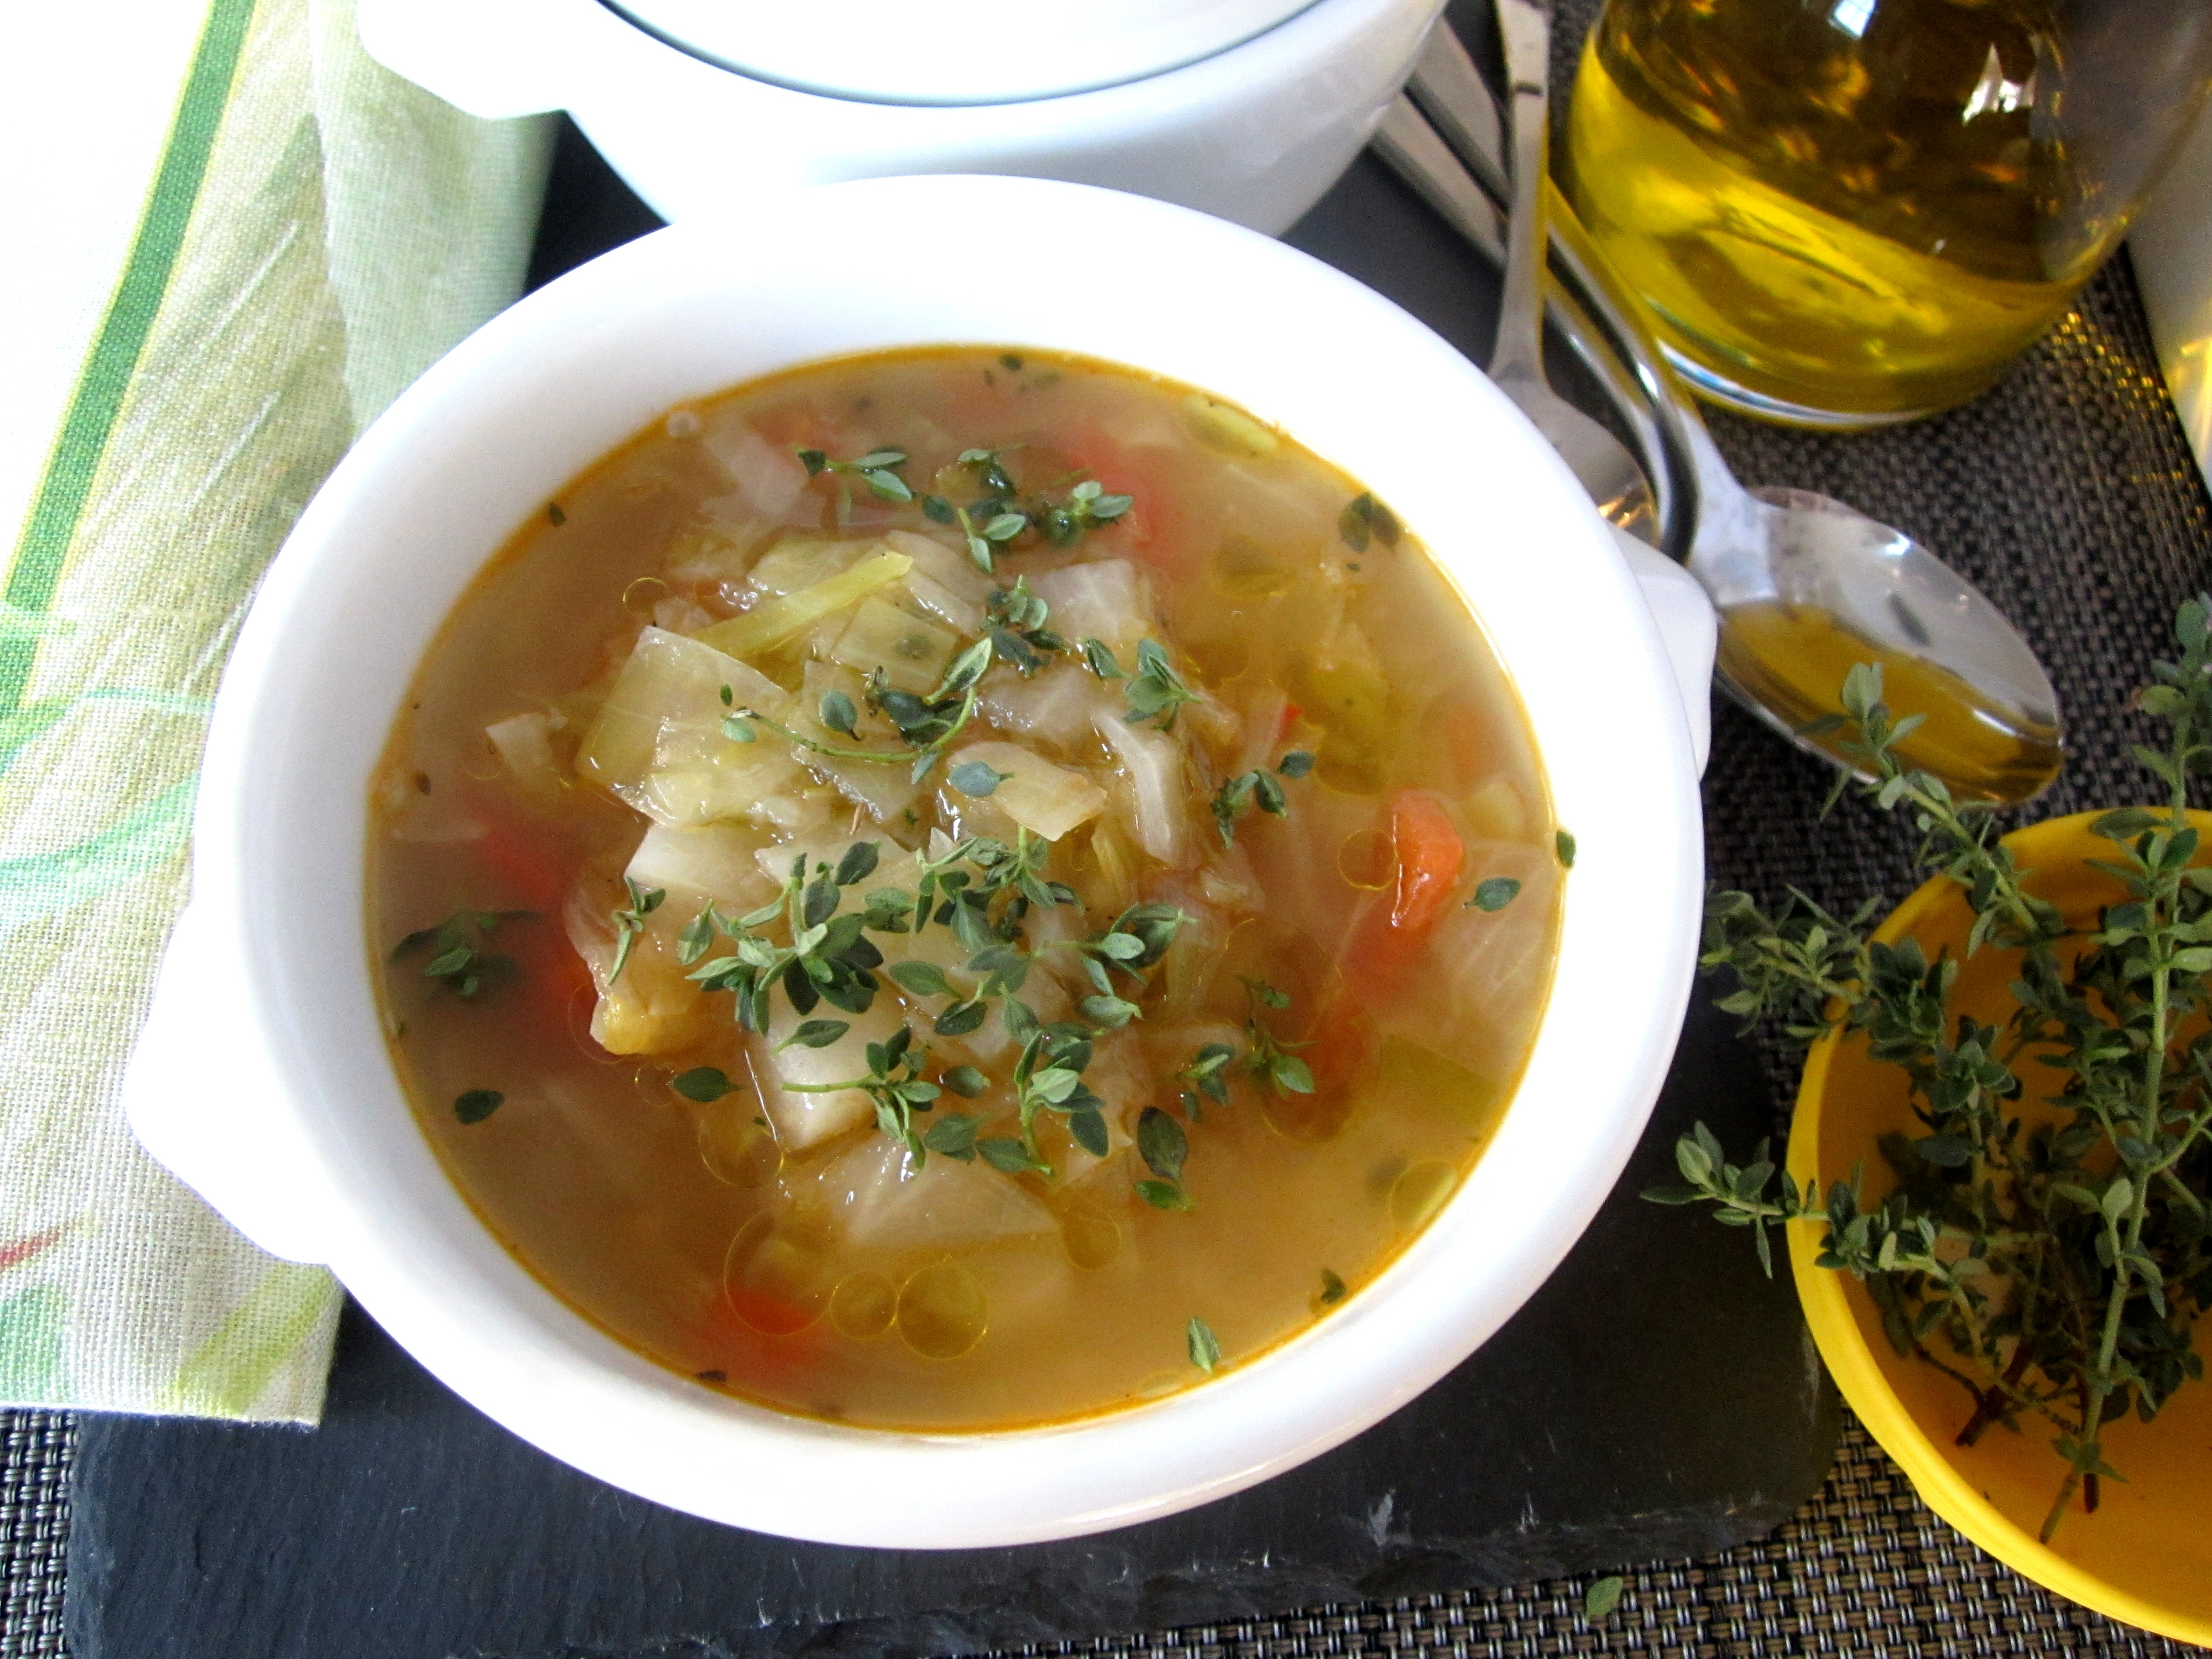 Spanish-French cabbage soup from Majorca - Dishing - Boston food blog